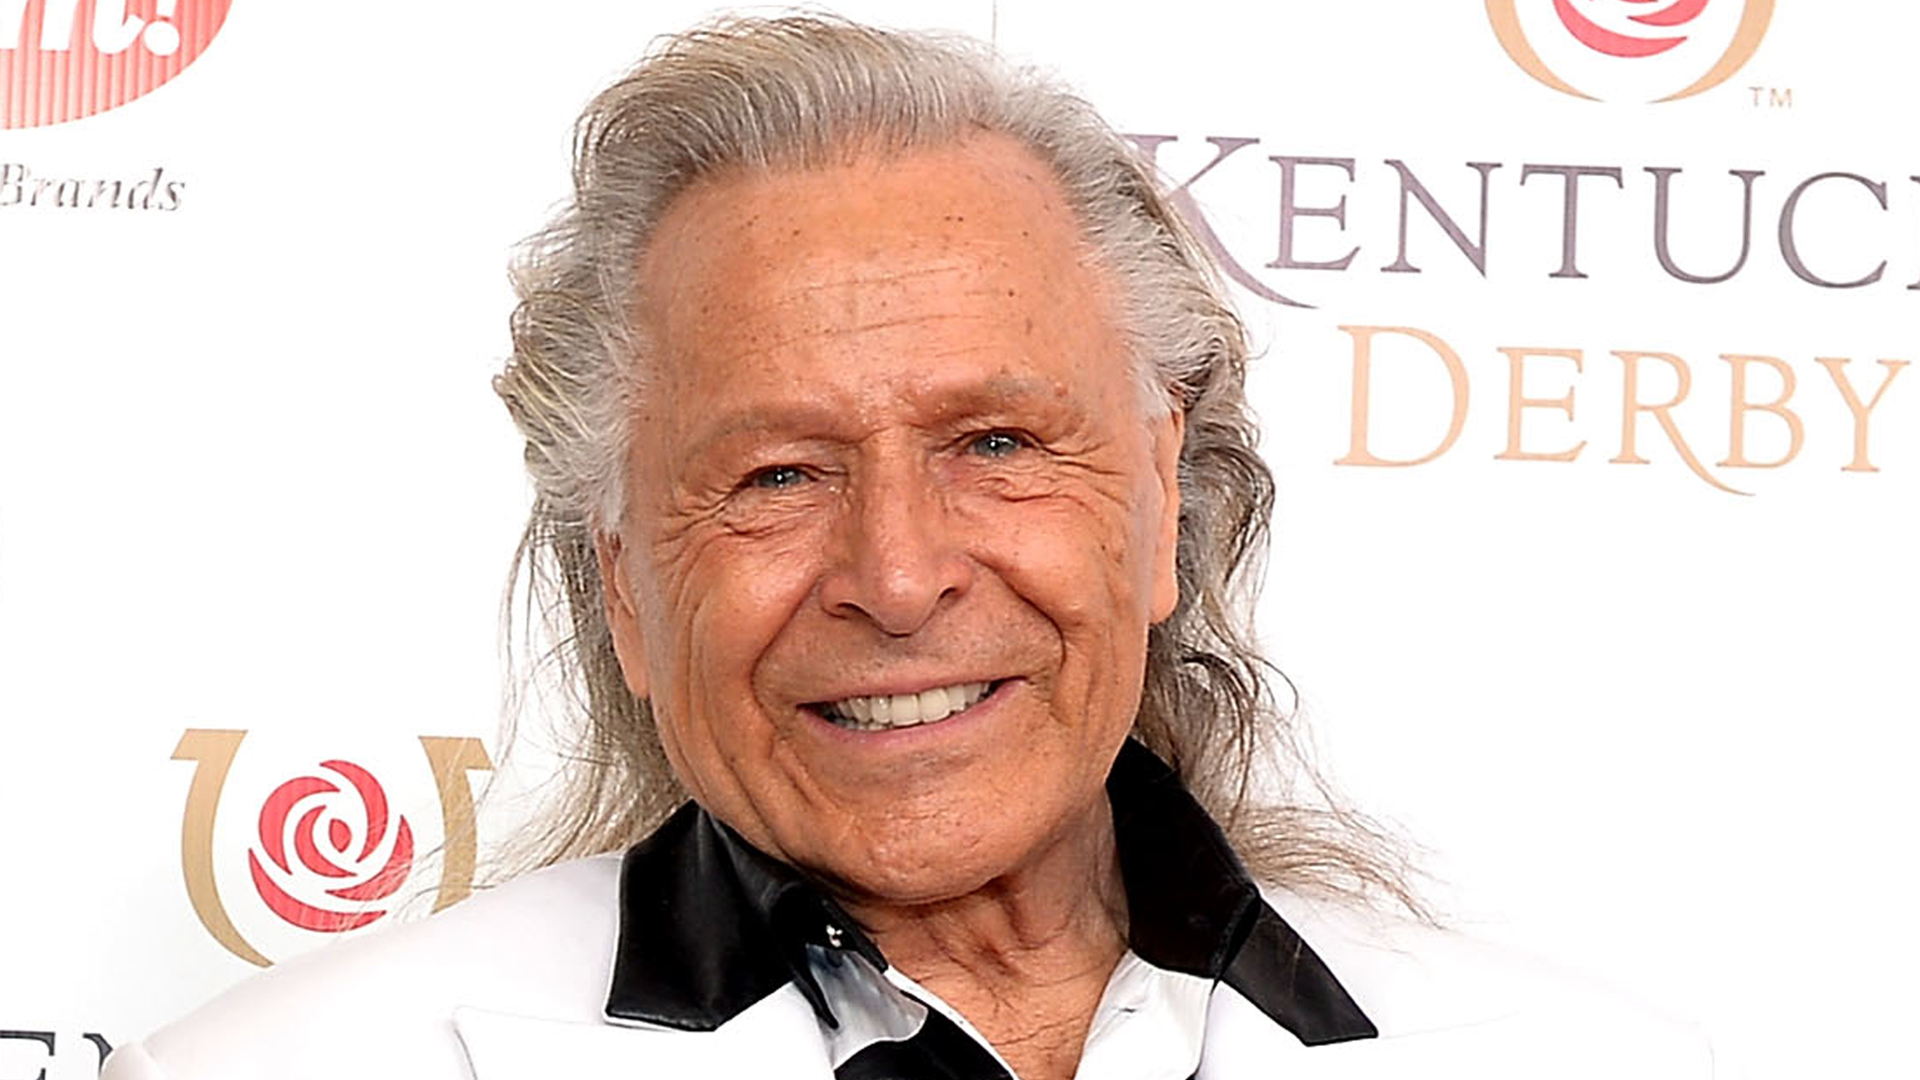 Peter Nygard attends the 142nd Kentucky Derby in Louisville, Kentucky, on May 7, 2016. (Credit: Gustavo Caballero / Getty Images)